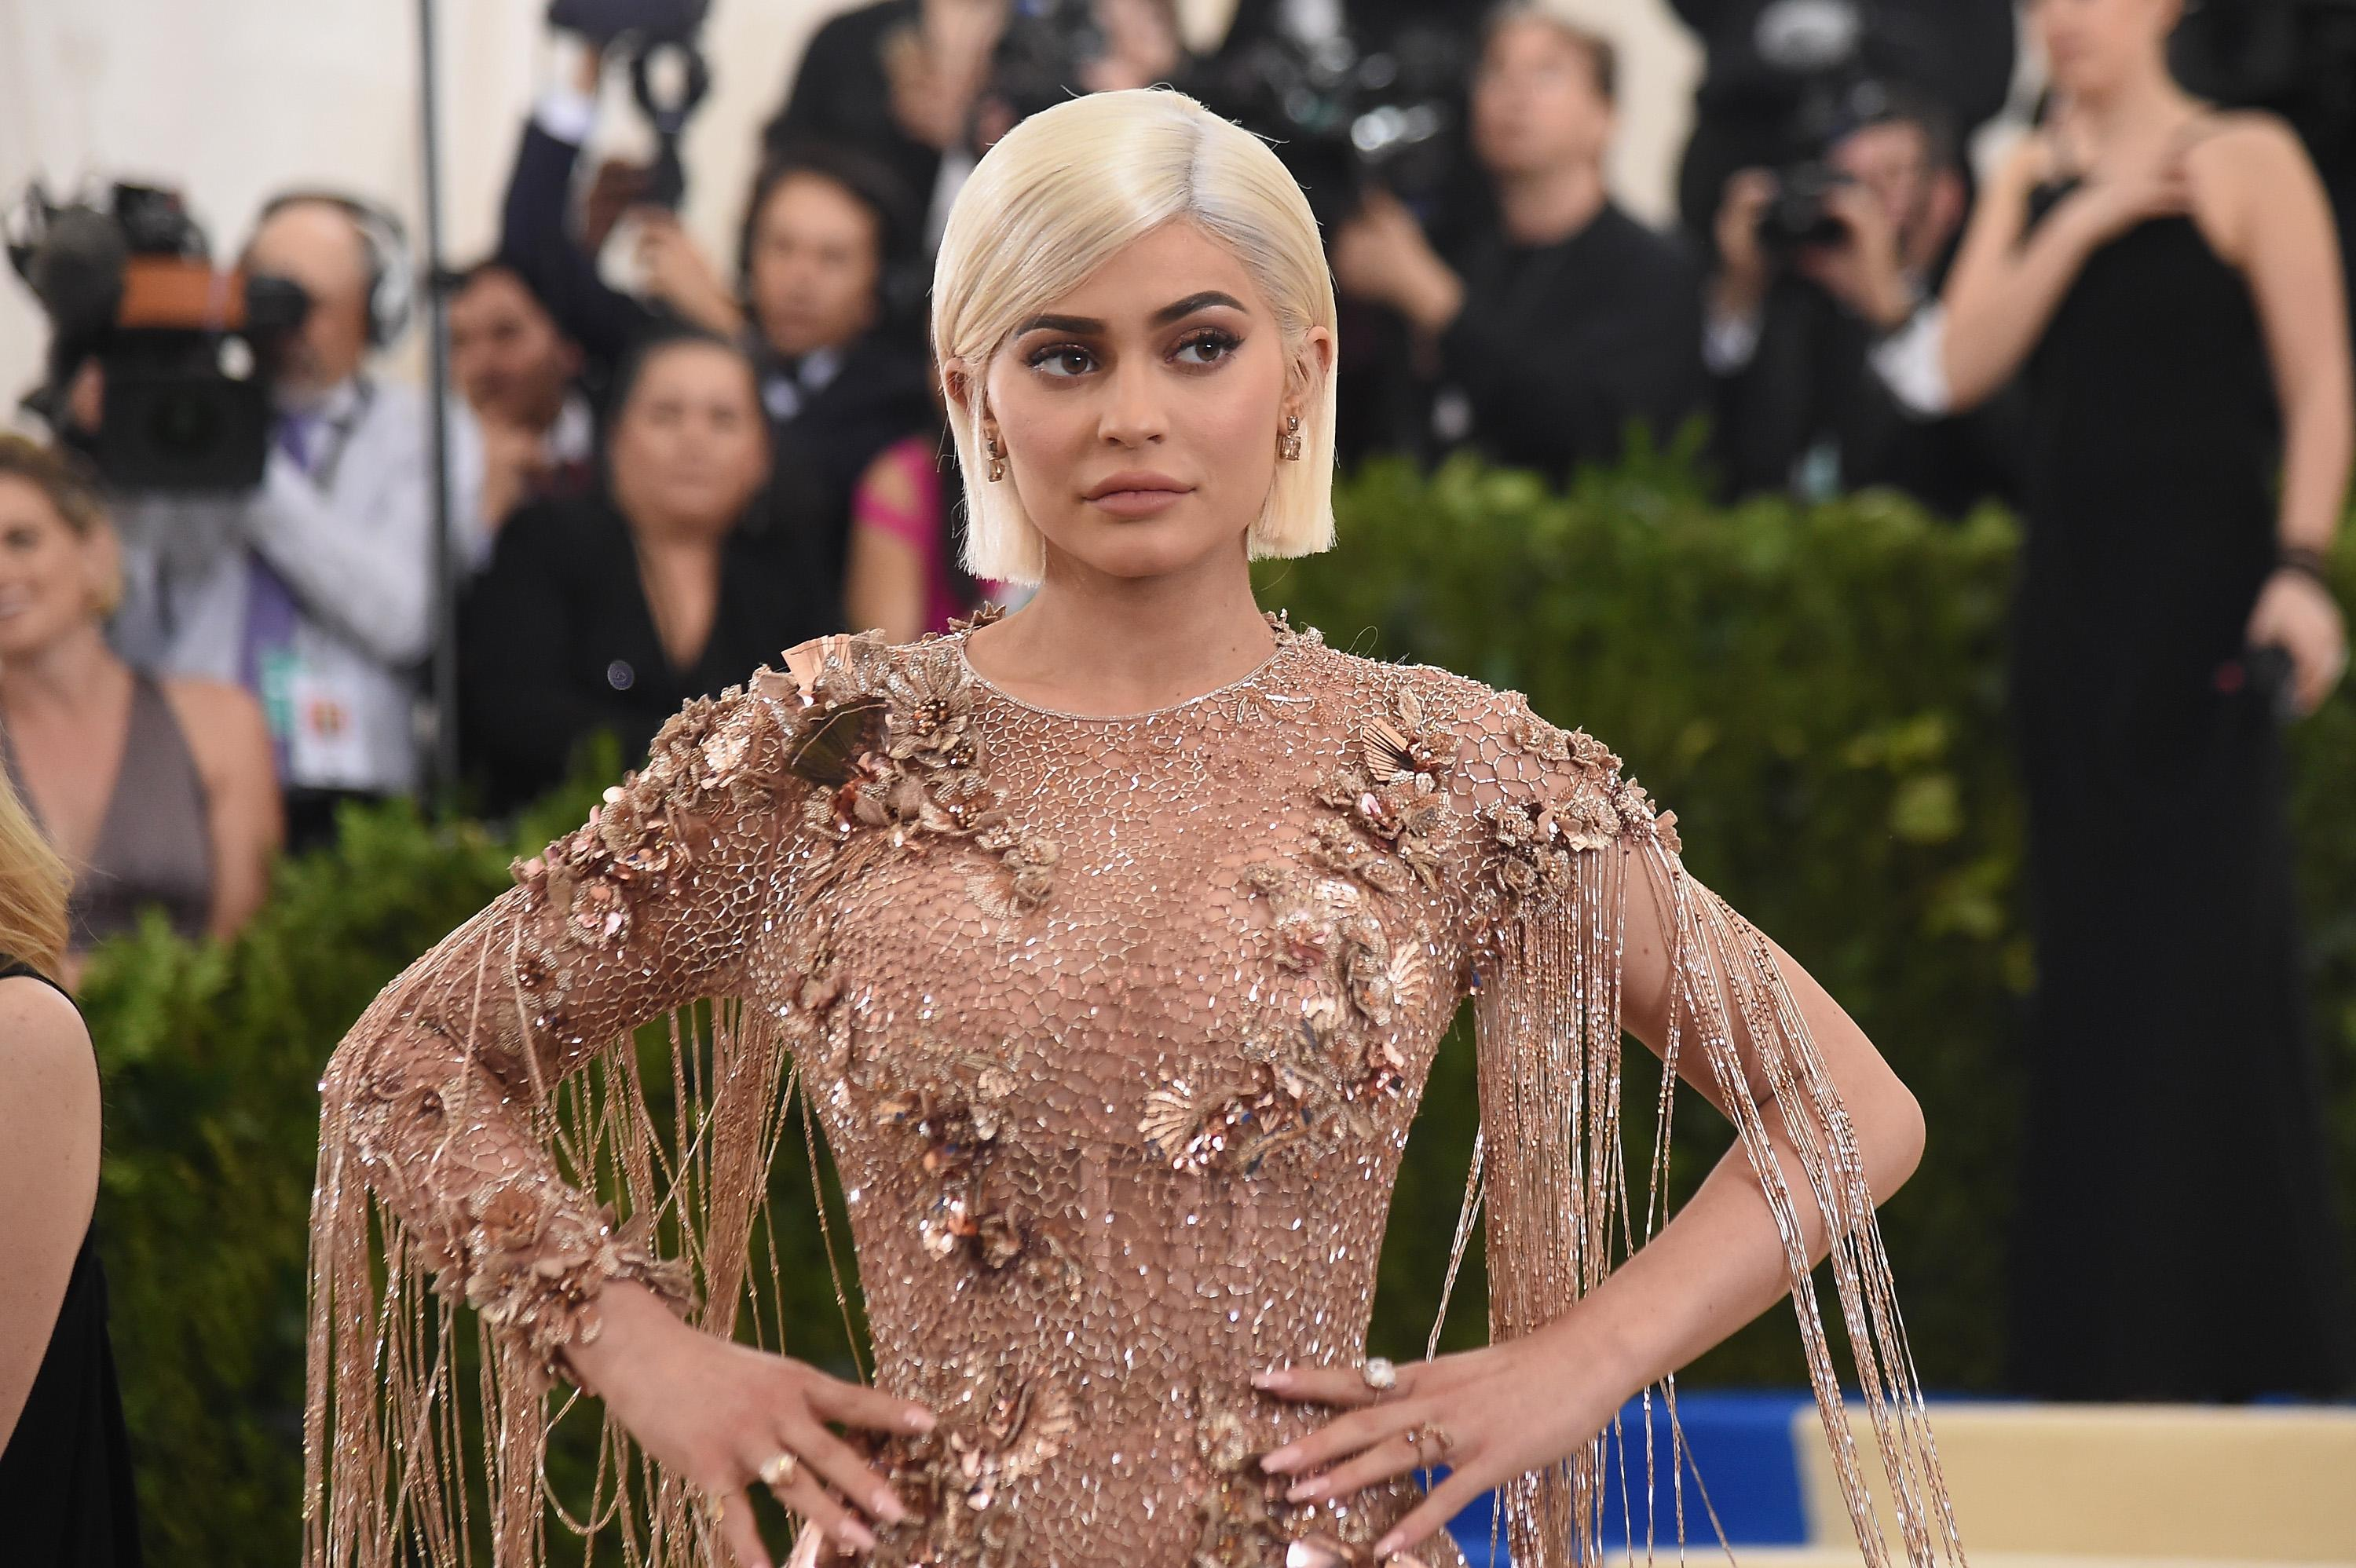 Kylie Jenner 'self-conscious about body changing'